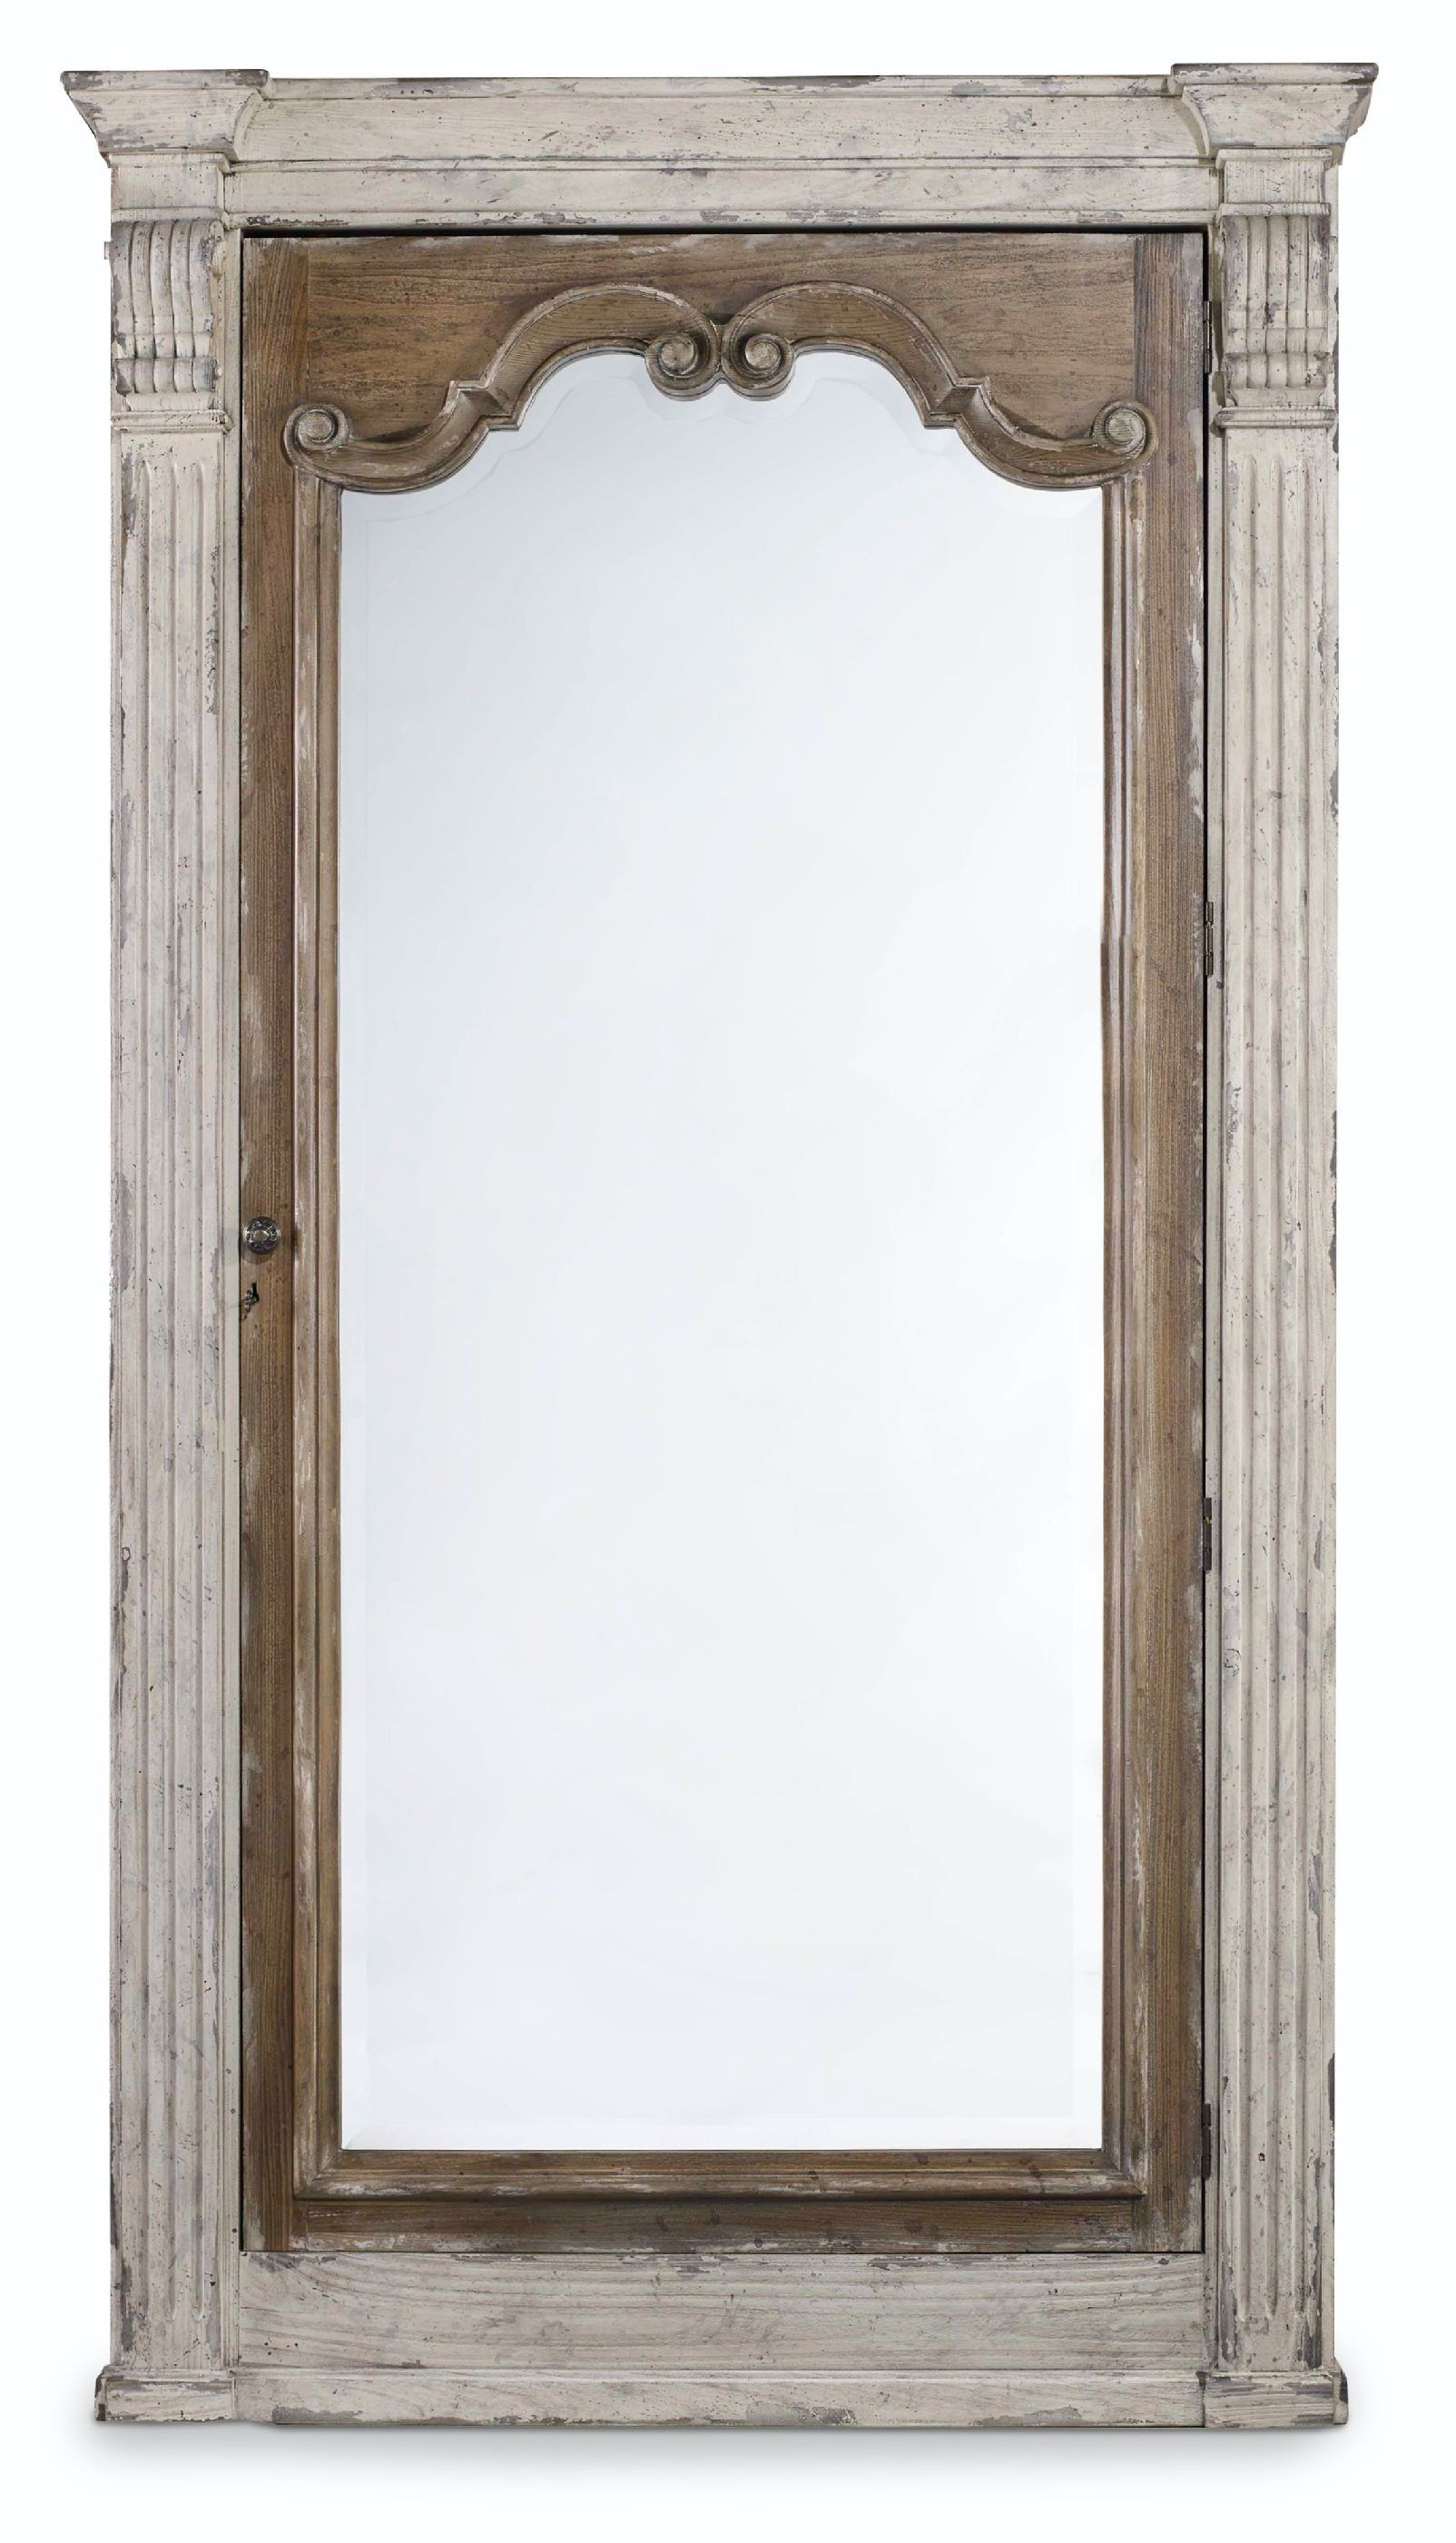 Hooker Furniture Chatelet Floor Mirror W/Jewelry Armoire Storage 5351 50003